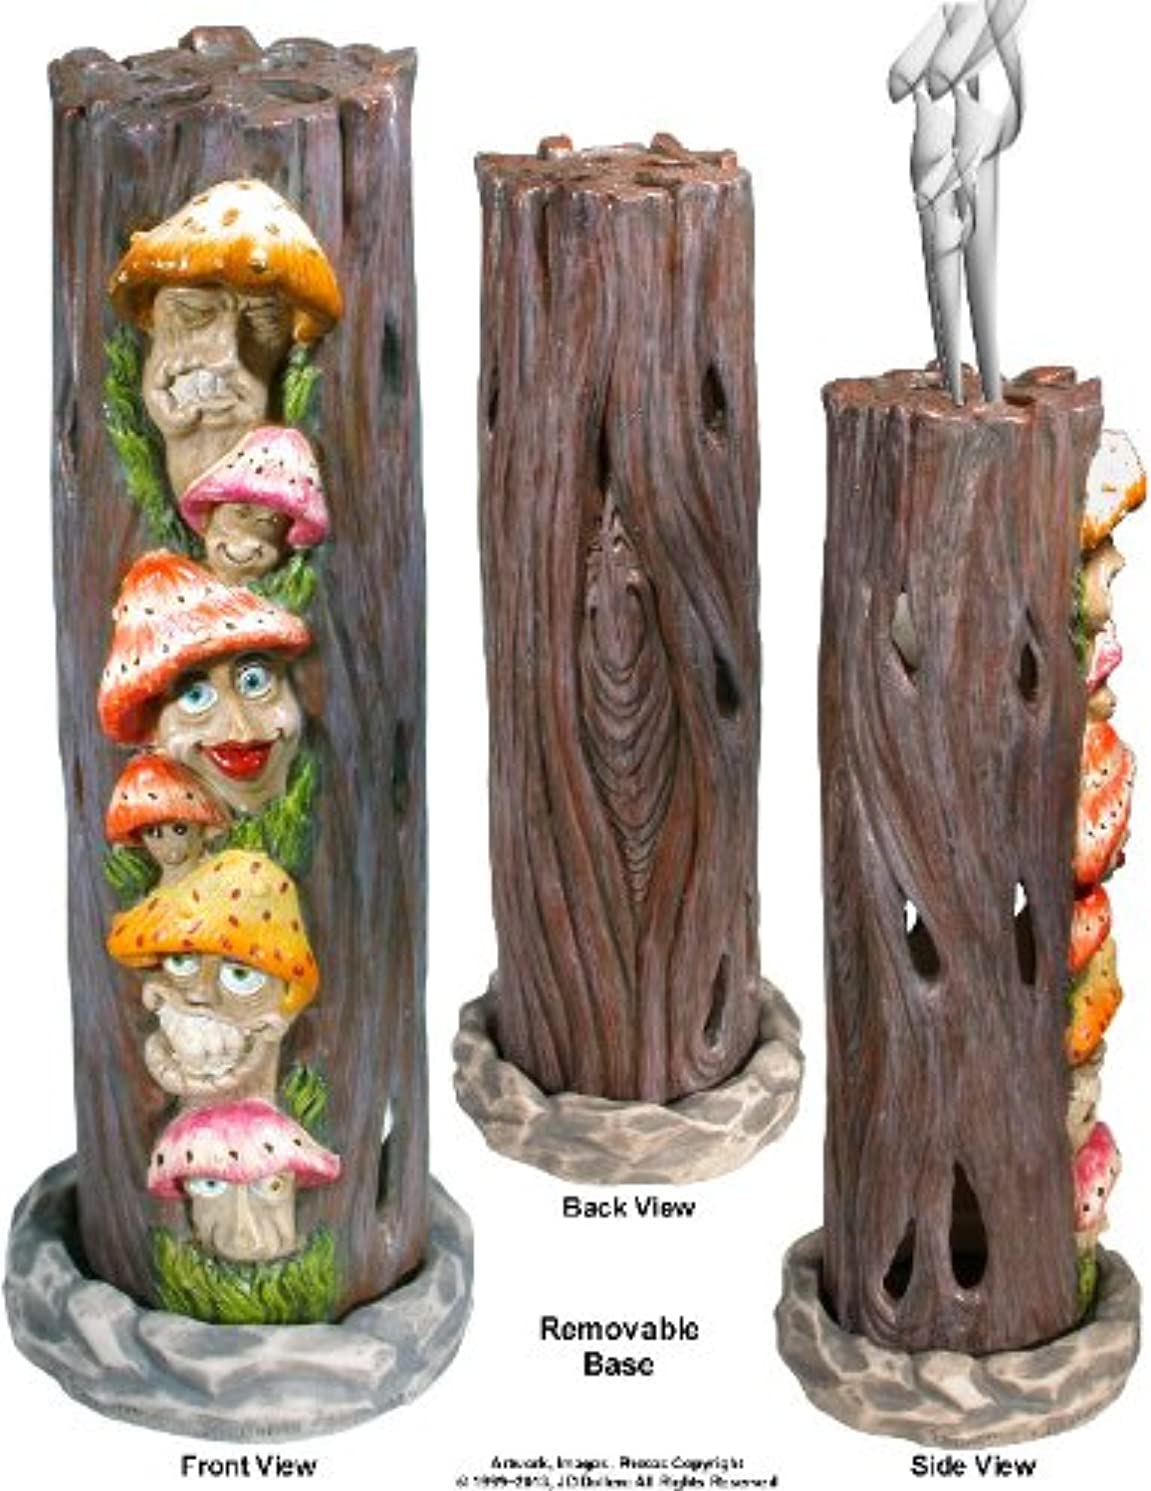 サロンパーティー決してMushrooms Family inアリスWonderland SmokingタワーIncense burner-ashcatcher by Nose Dessertsブランド